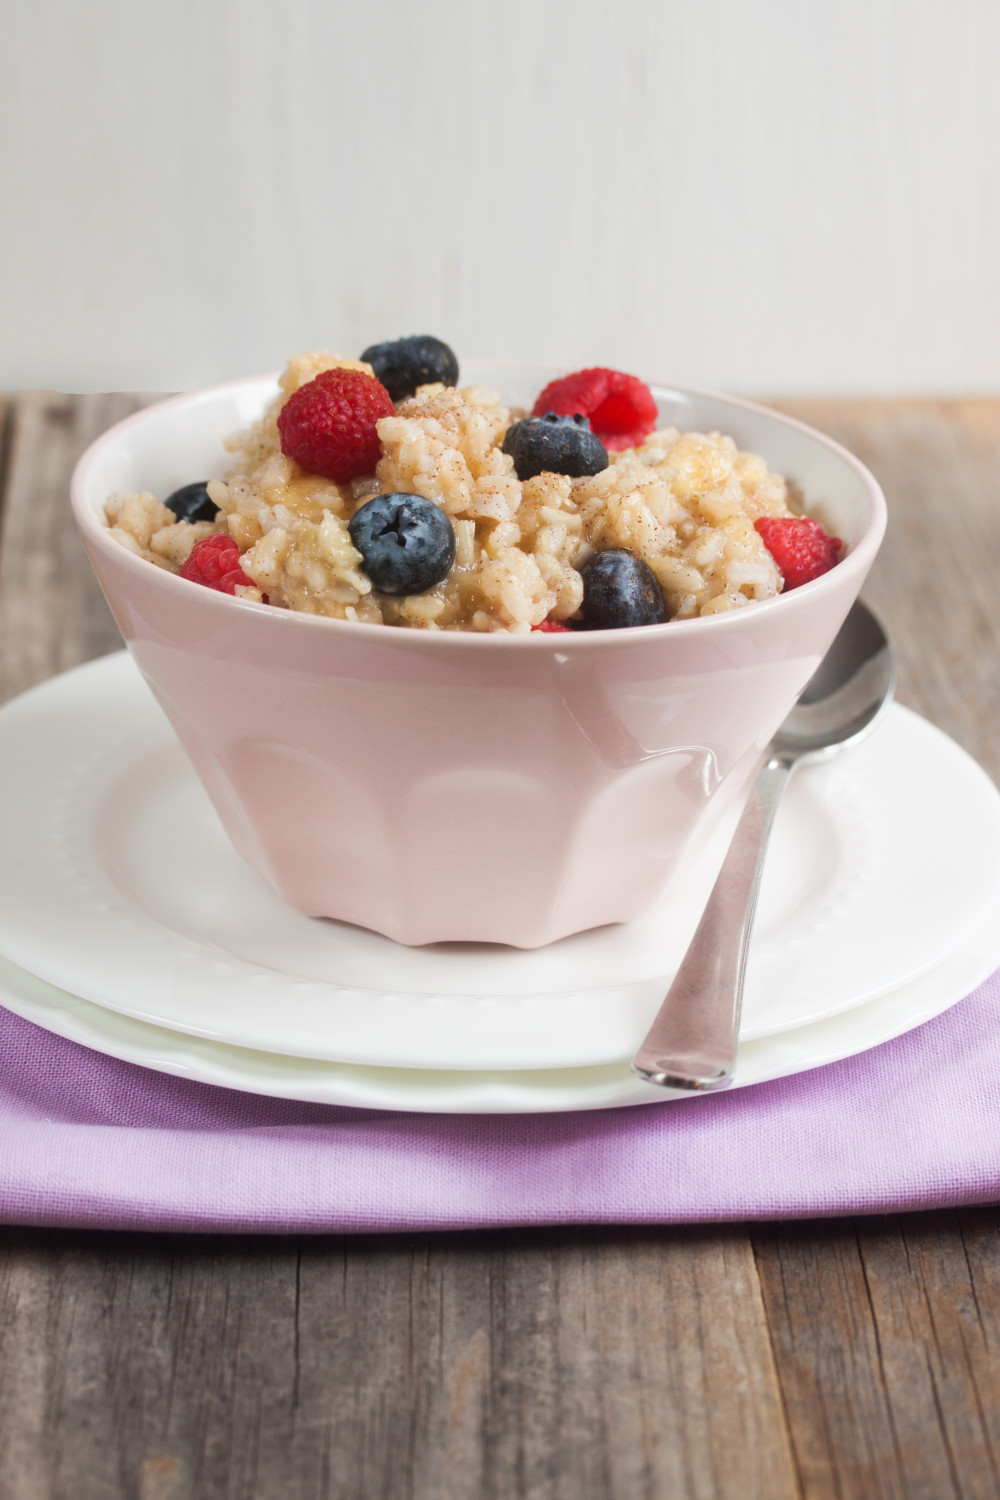 Whole Foods Recipe for Banana Berry Basmati Rice Pudding